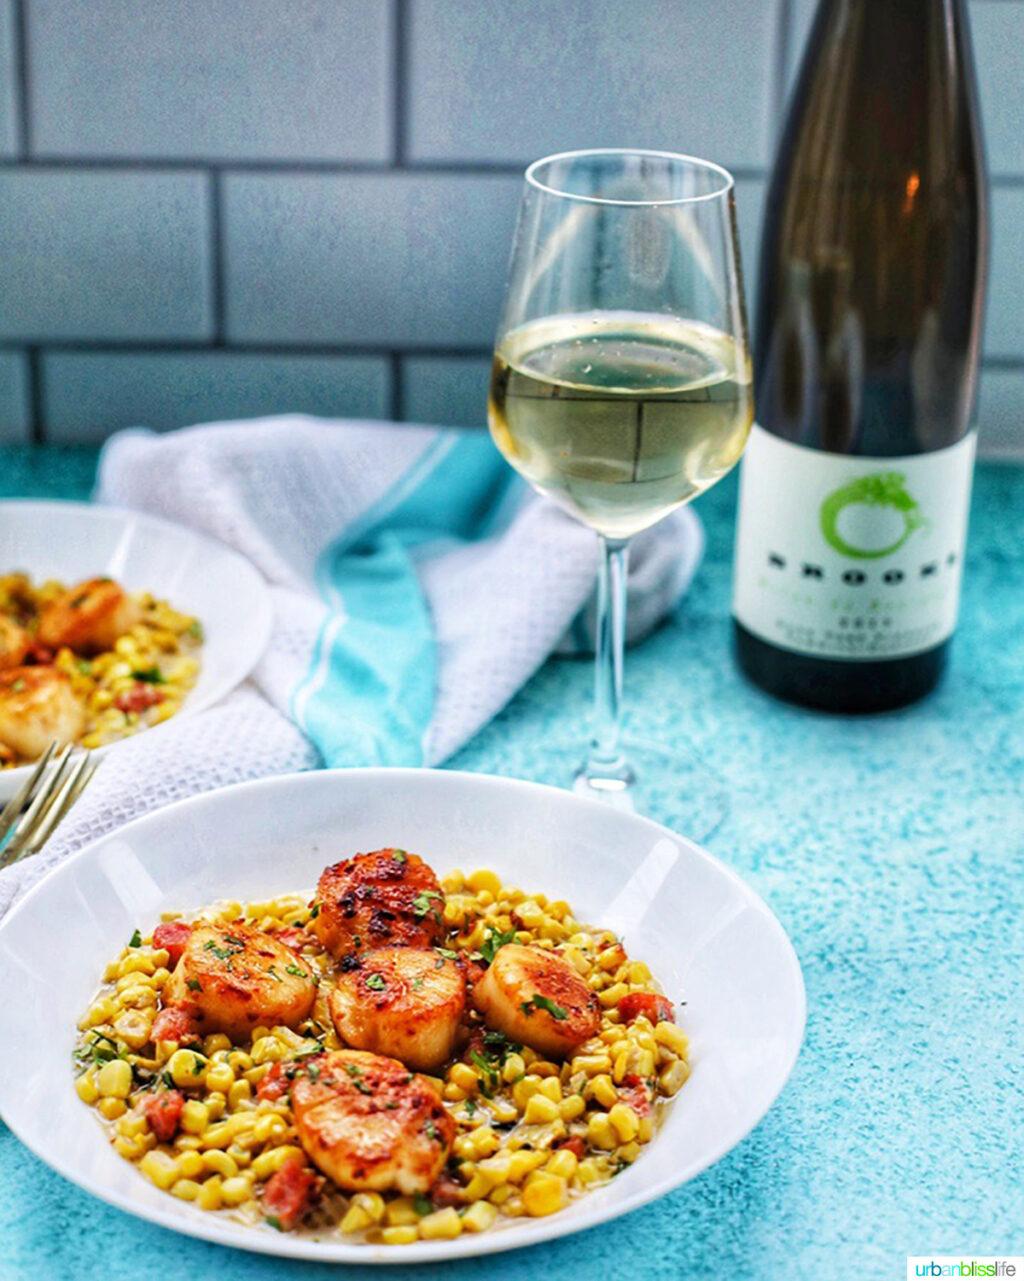 Seared scallops with corn and white wine in a glass and bottle